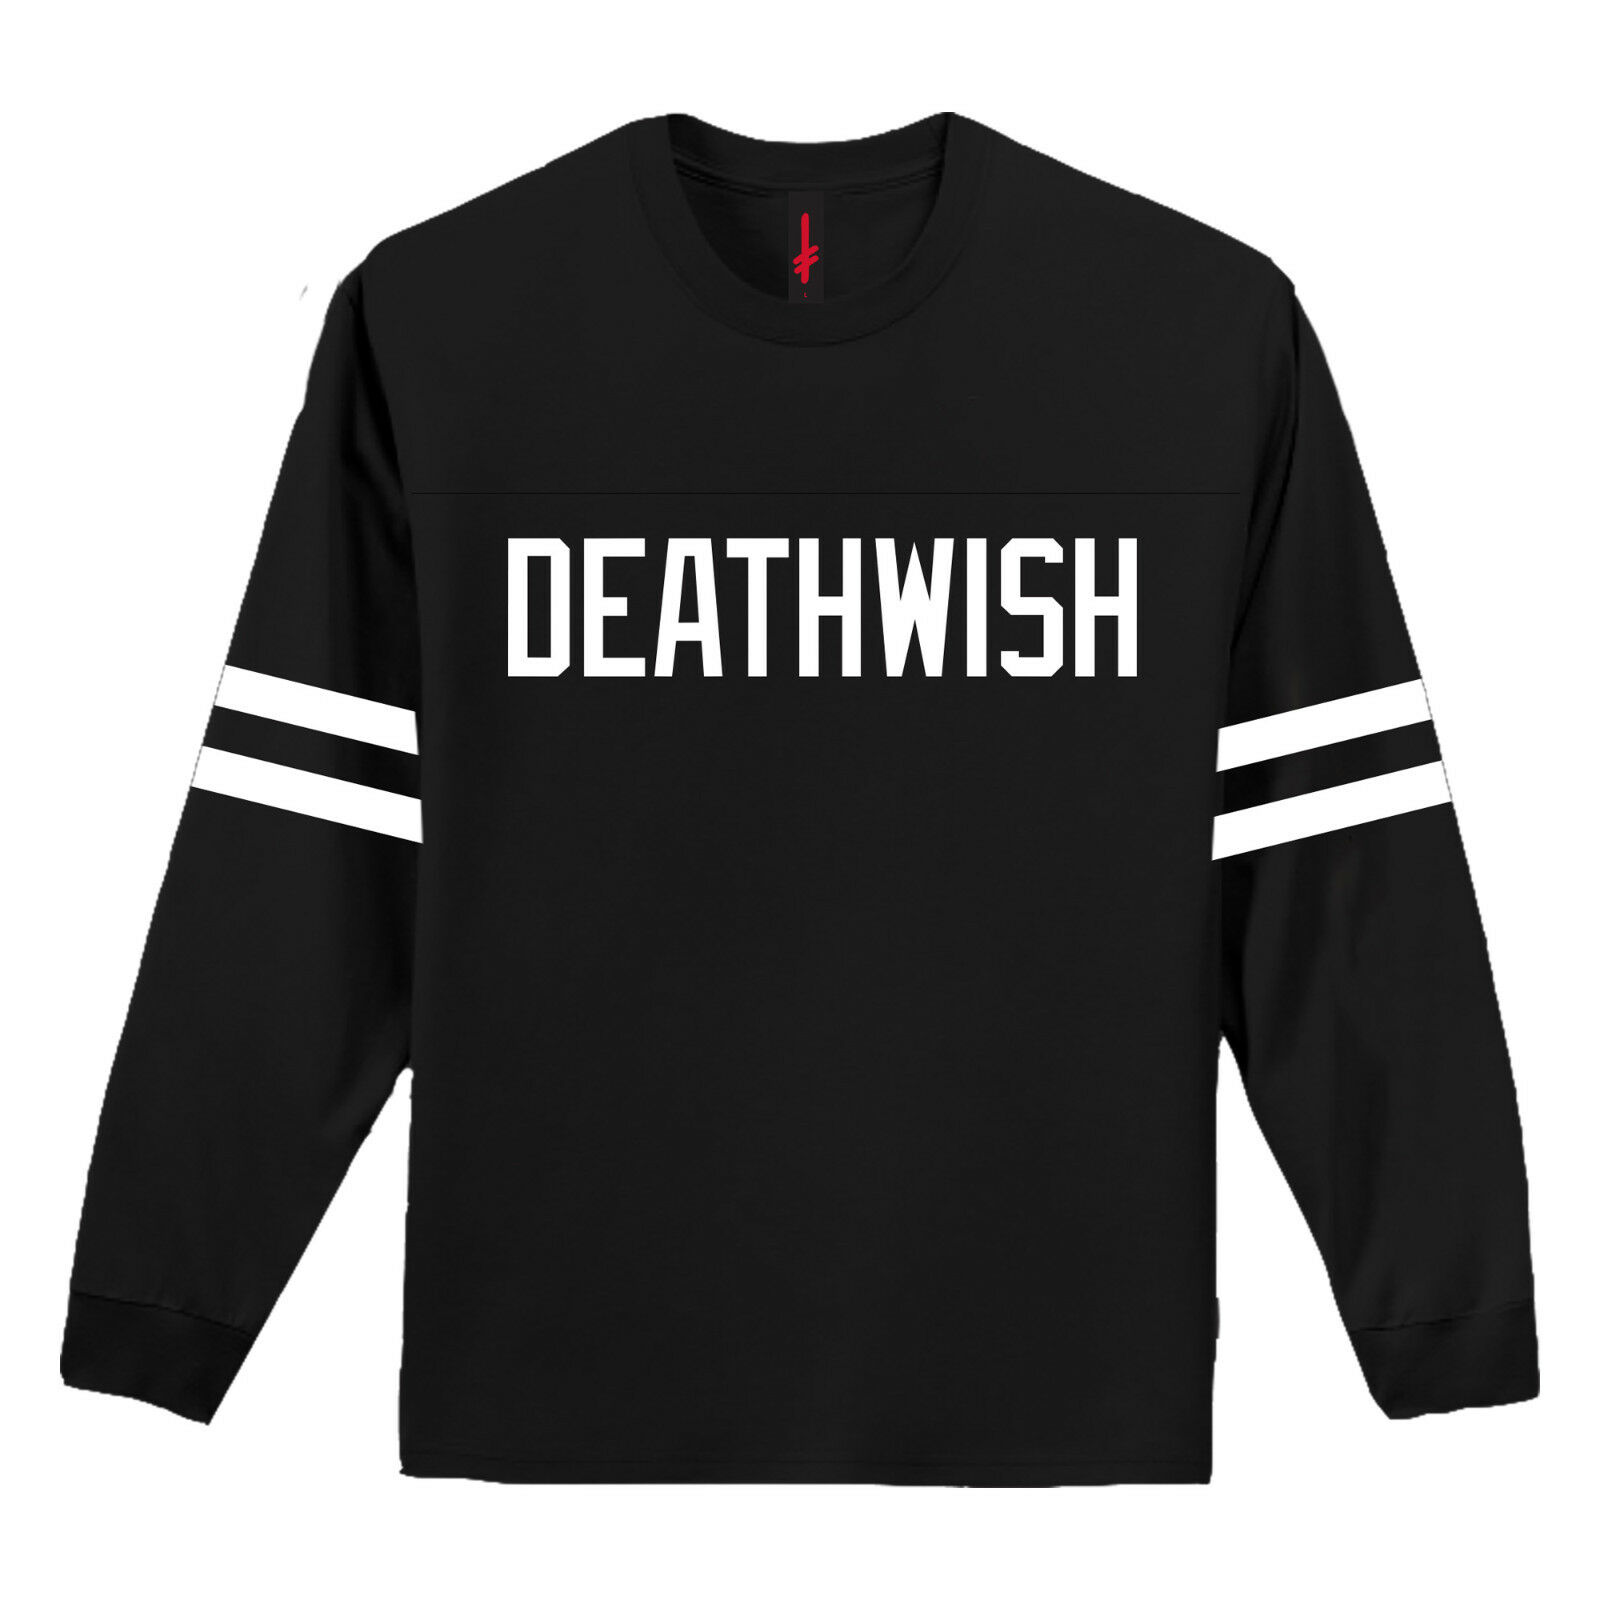 DEATHWISH Skateboards Longsleeve Shirt Boardwalk, schwarz, Gr. S